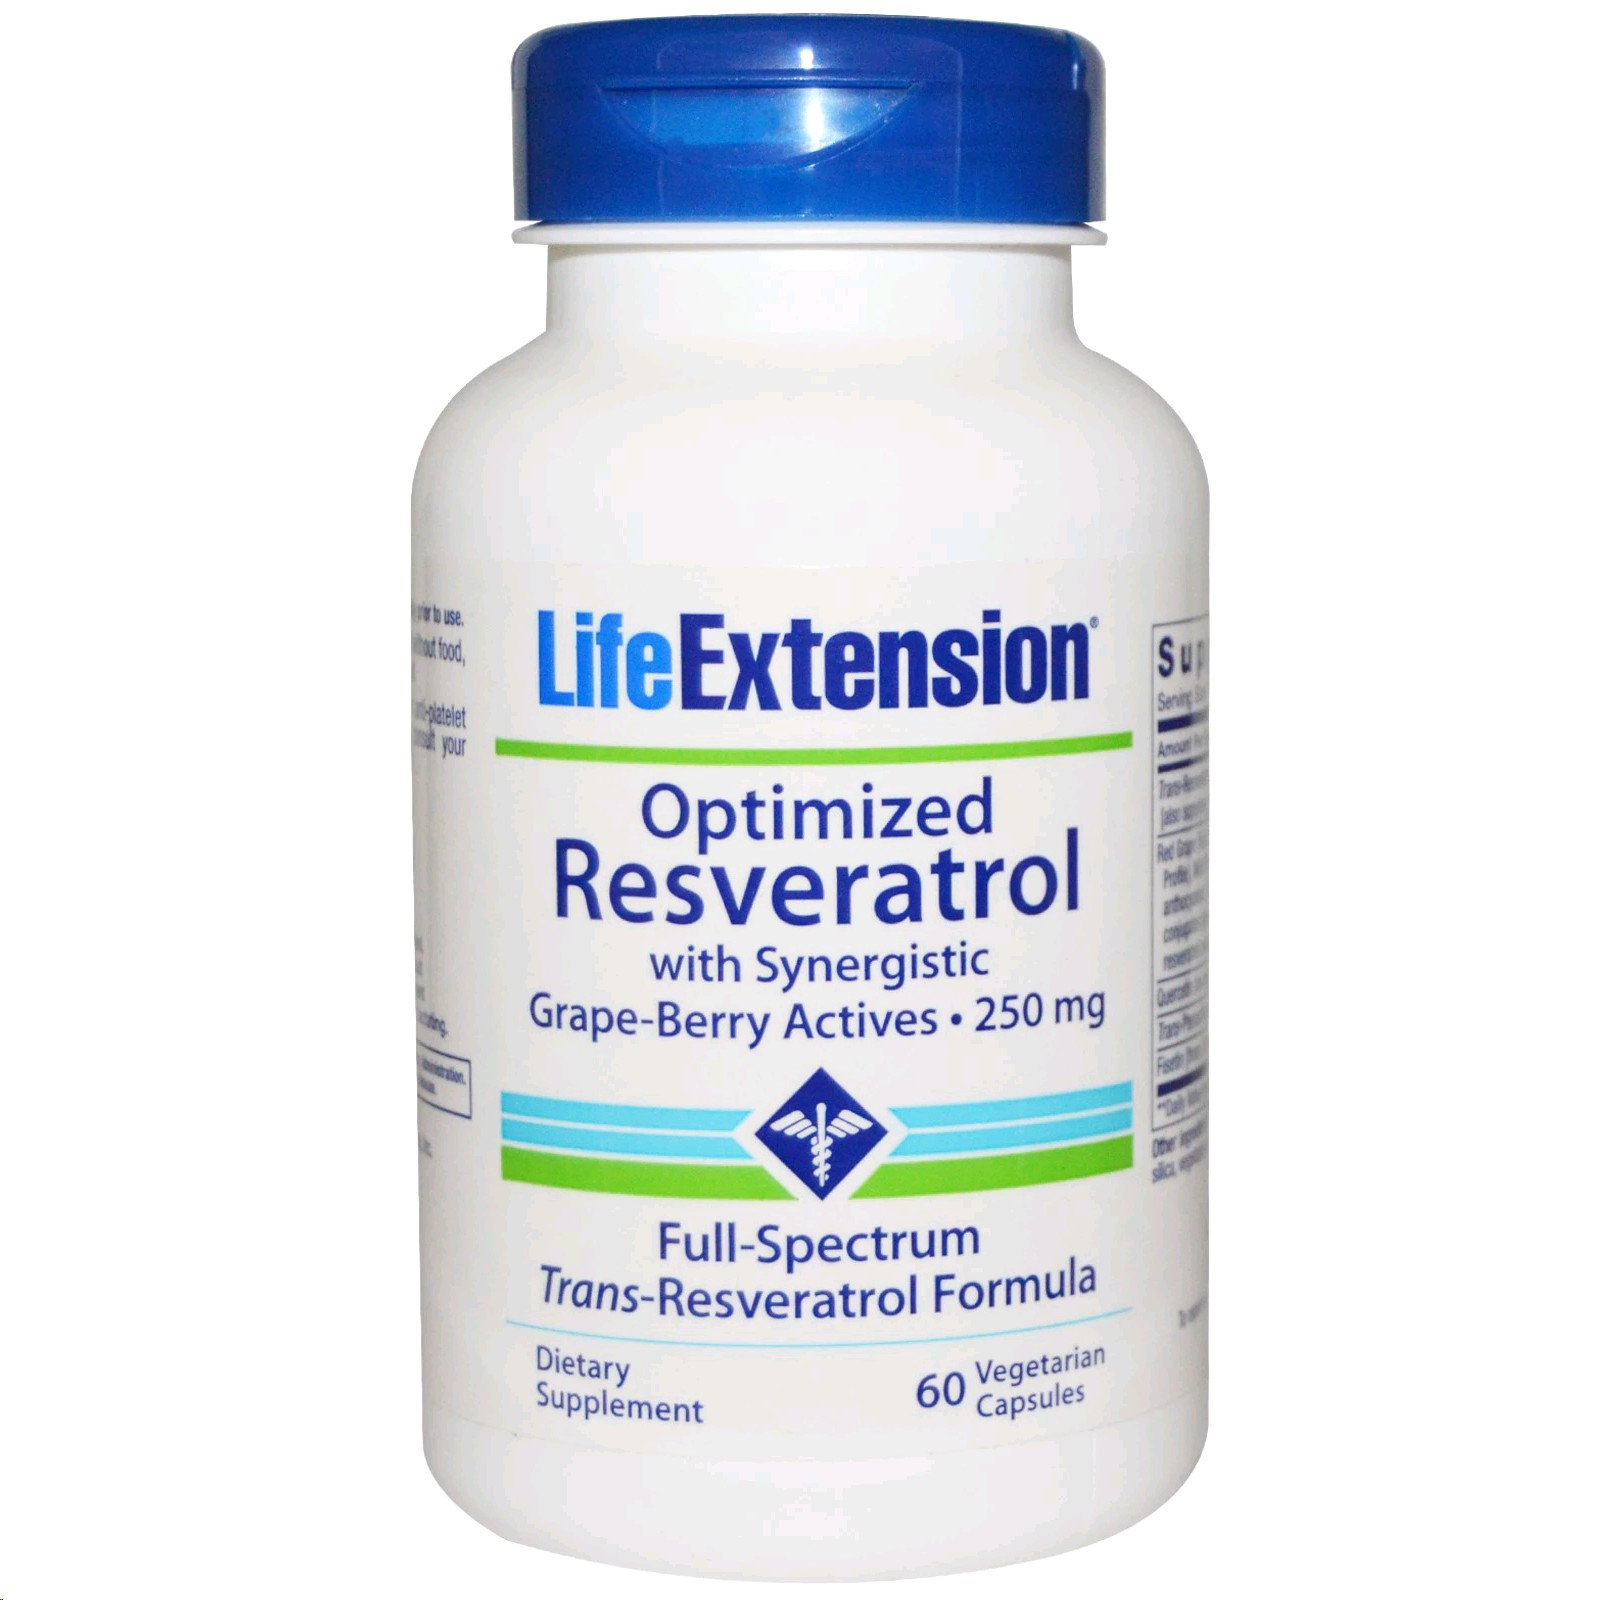 LIFE EXTENSION OPTIMIZED RESVERATROL 250 MG 60 CAPSULES